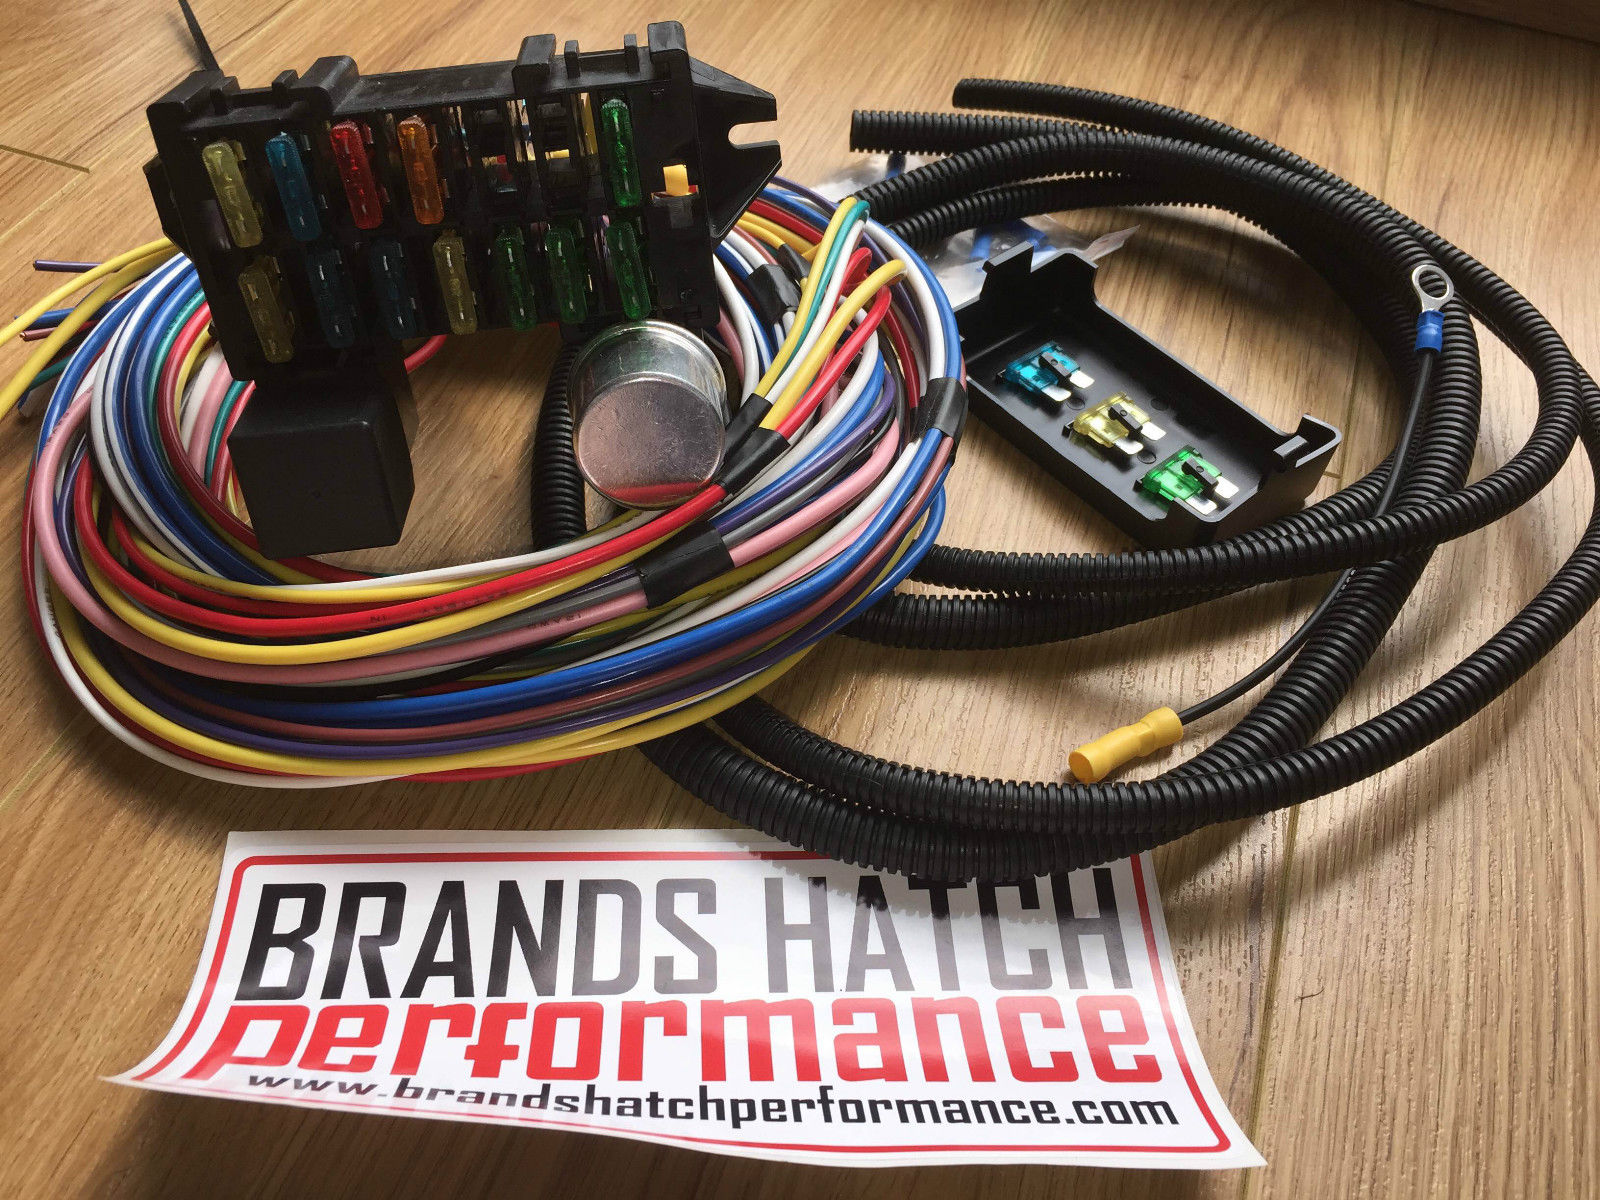 classic car kit car hot rod wiring looms rh turbosport co uk race car wiring looms uk drag race car wiring diagram